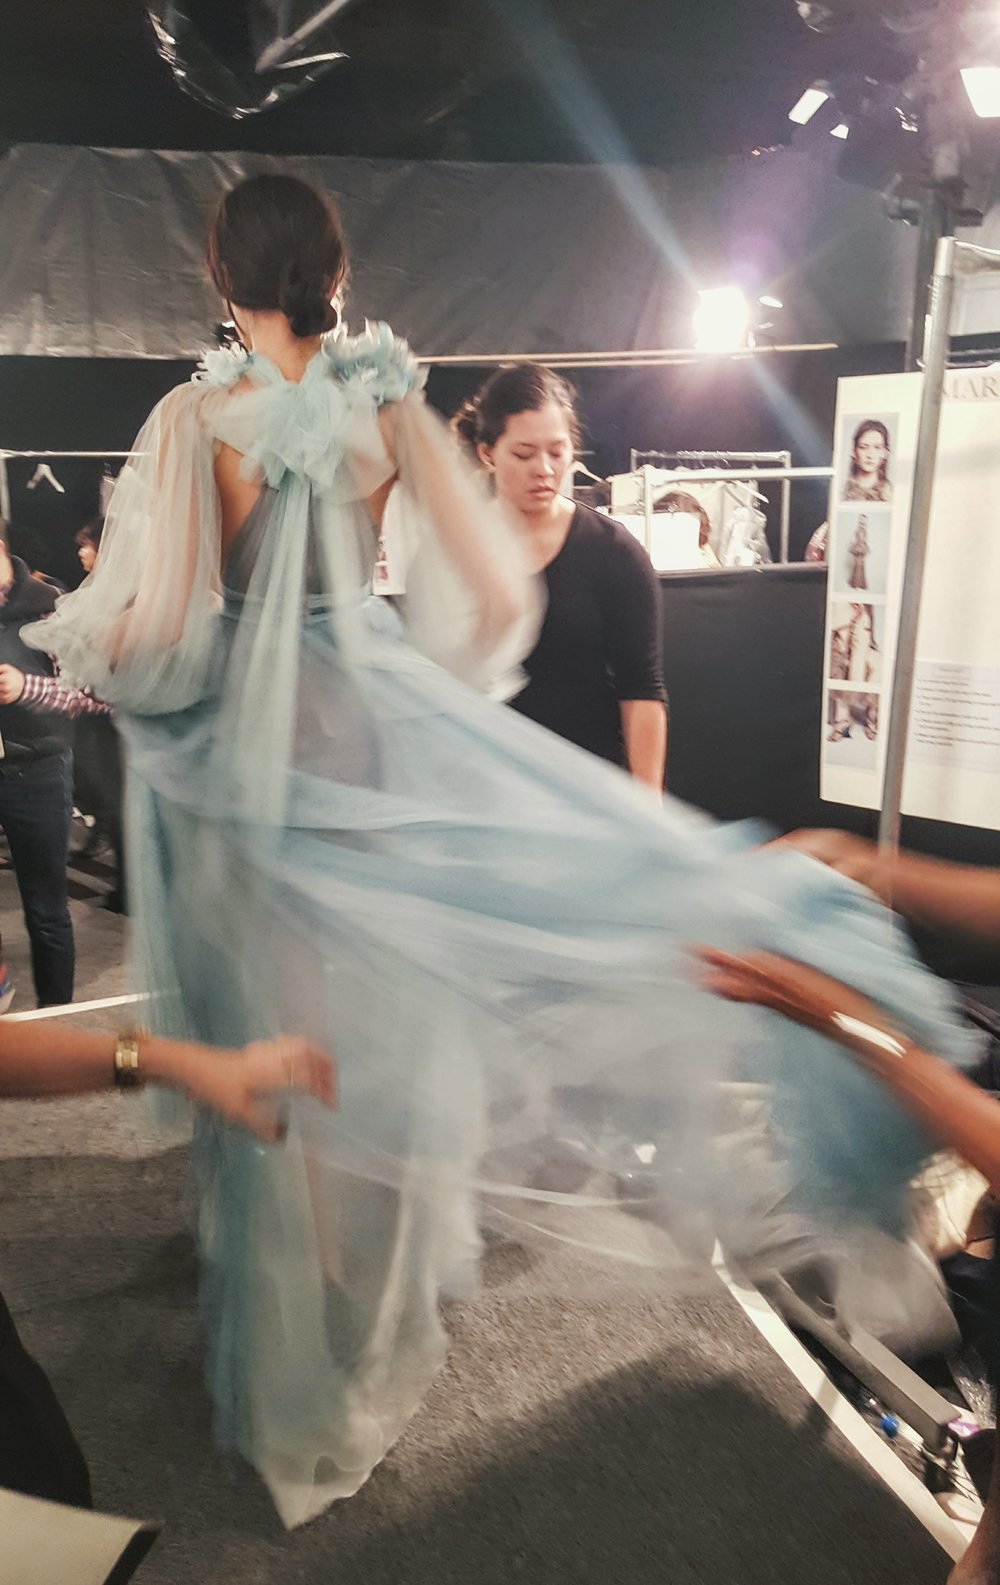 This baby blue gown was like a full-length babydoll, so floaty and stunning - one of my faves.